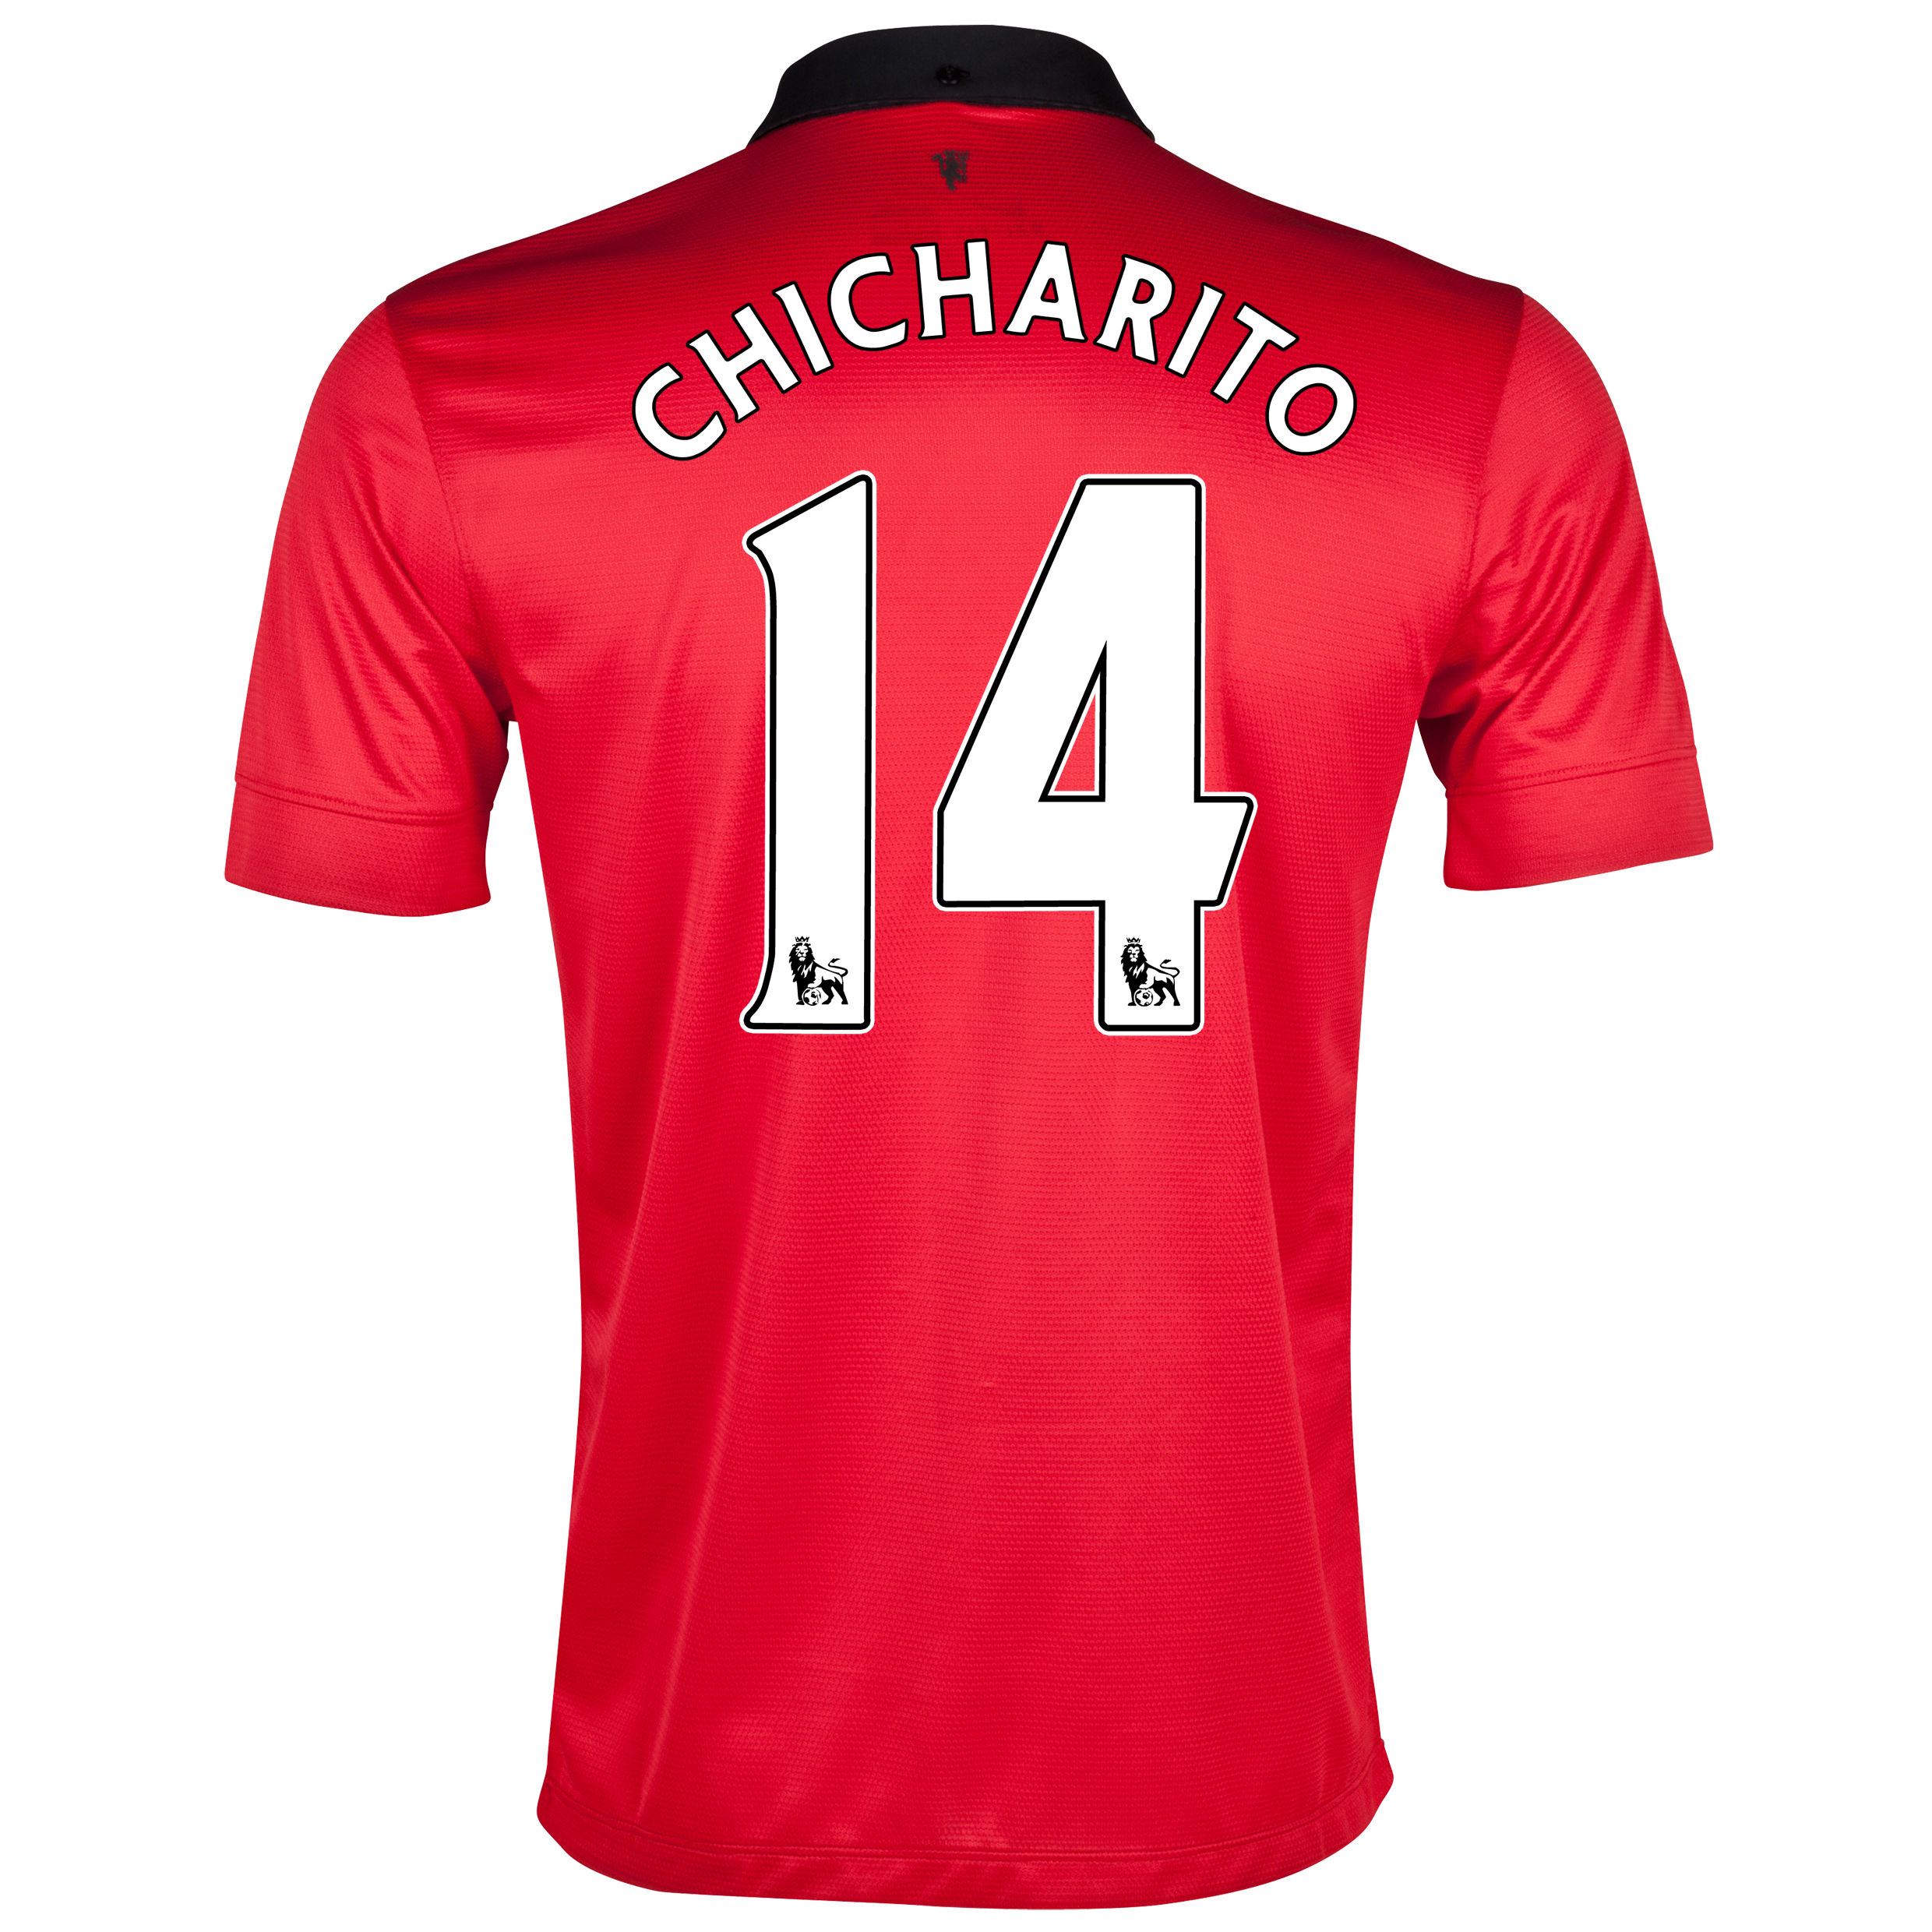 Manchester United Home Shirt 2013/14 with Chicharito 14 printing